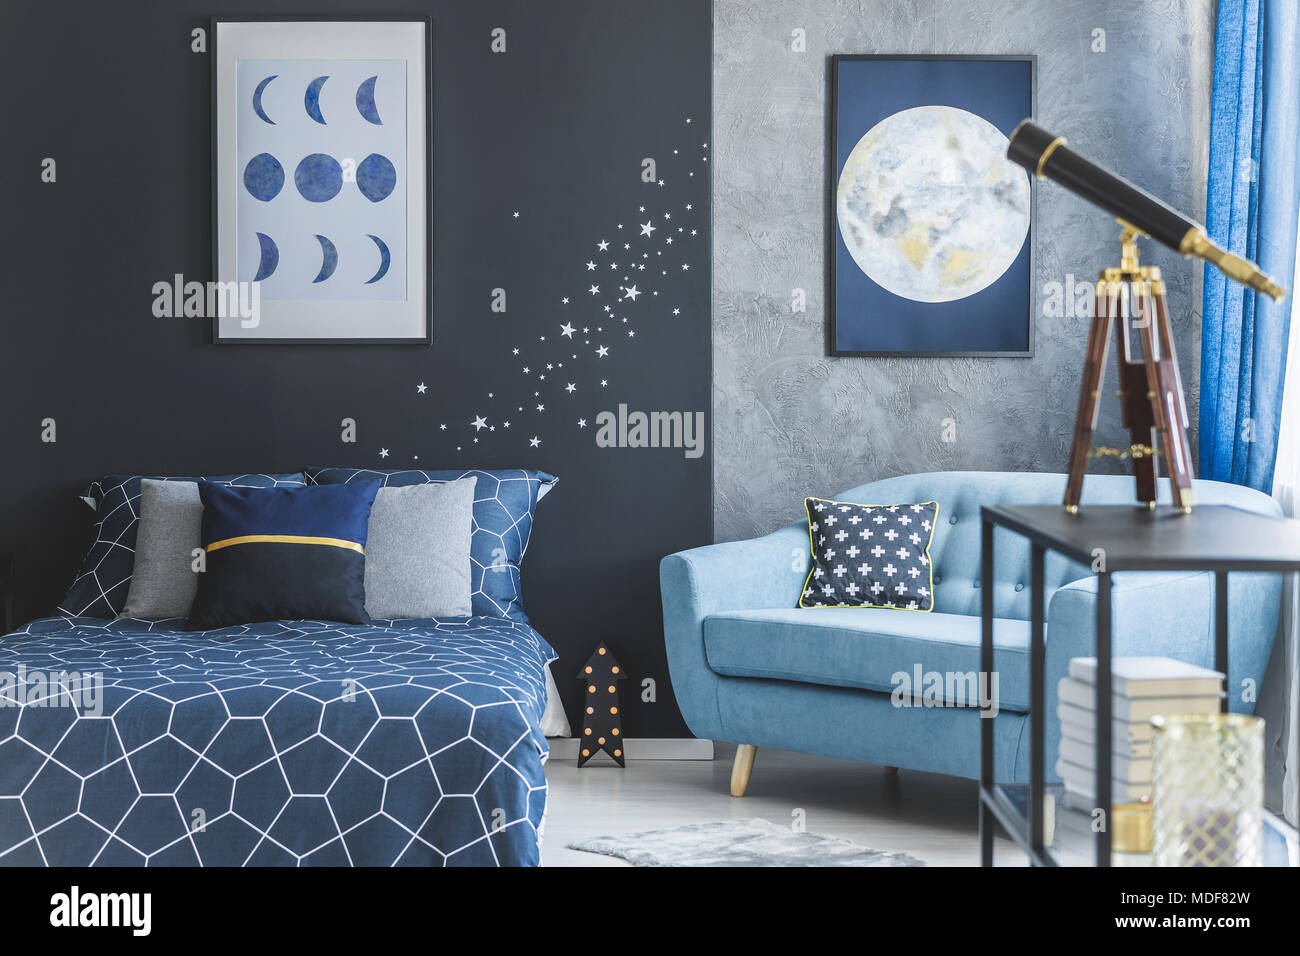 Turquoise armchair next to bed against navy blue wall in astronomic ...